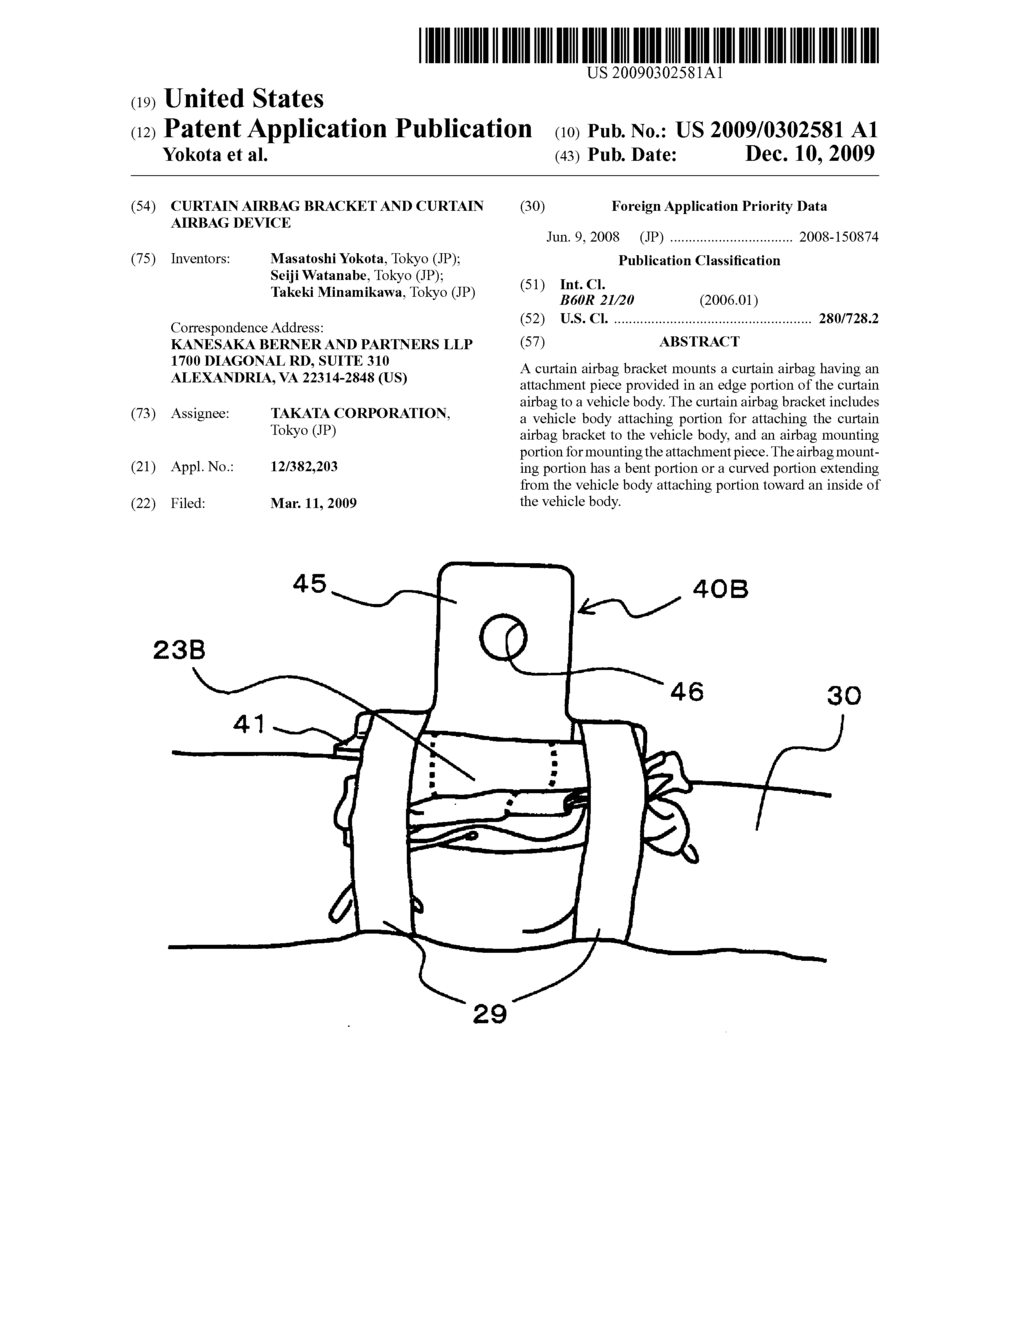 Curtain airbag bracket and curtain airbag device - diagram, schematic, and image 01